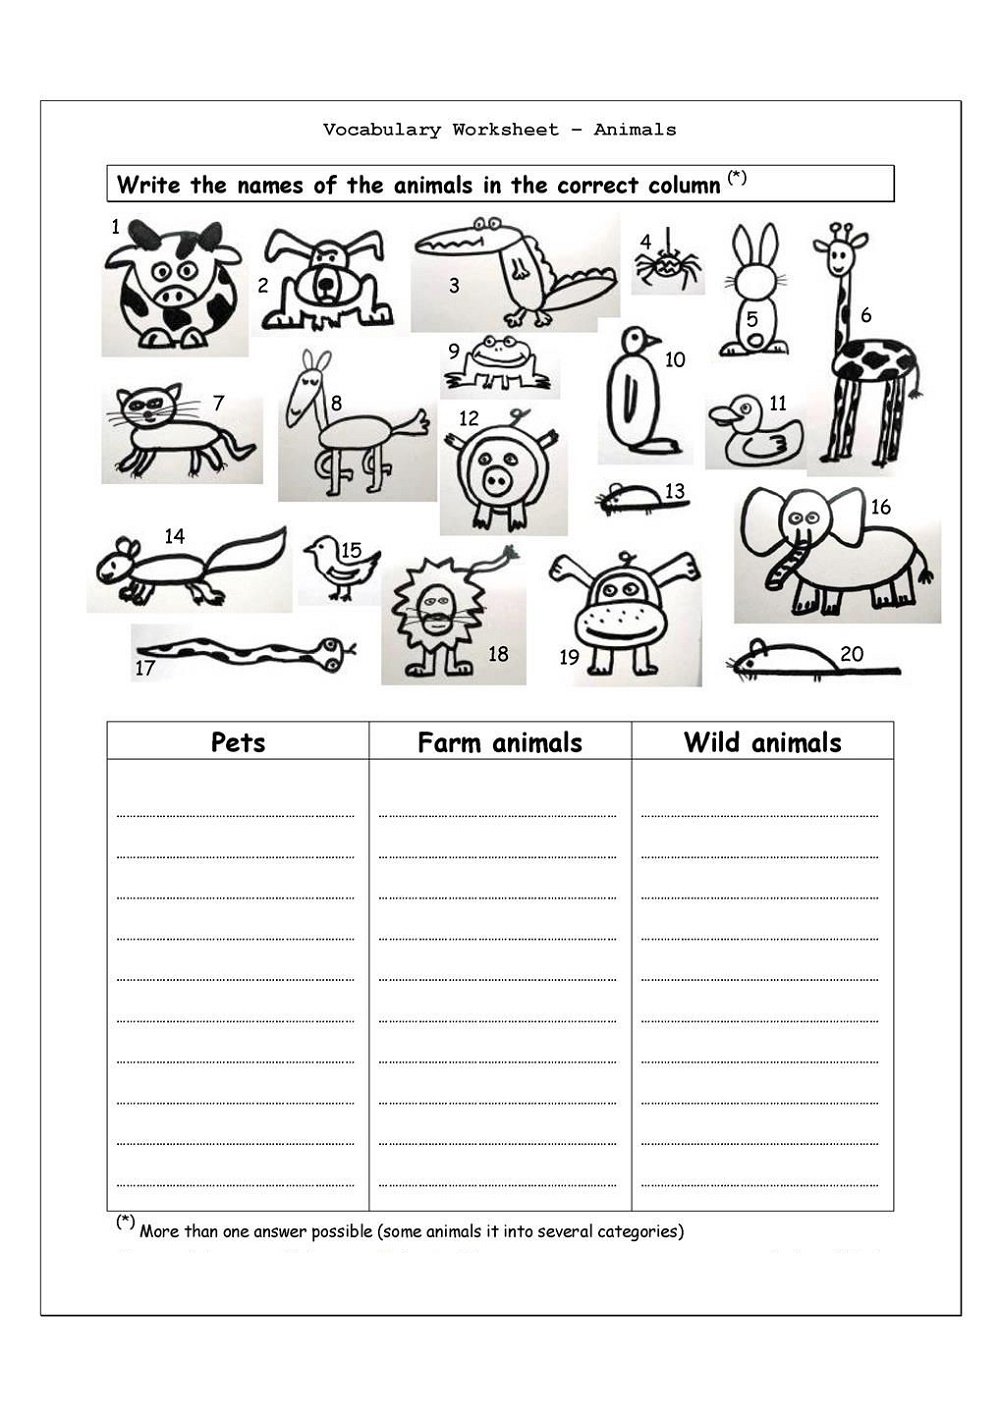 4th Grade Worksheets Animals Vocabulary